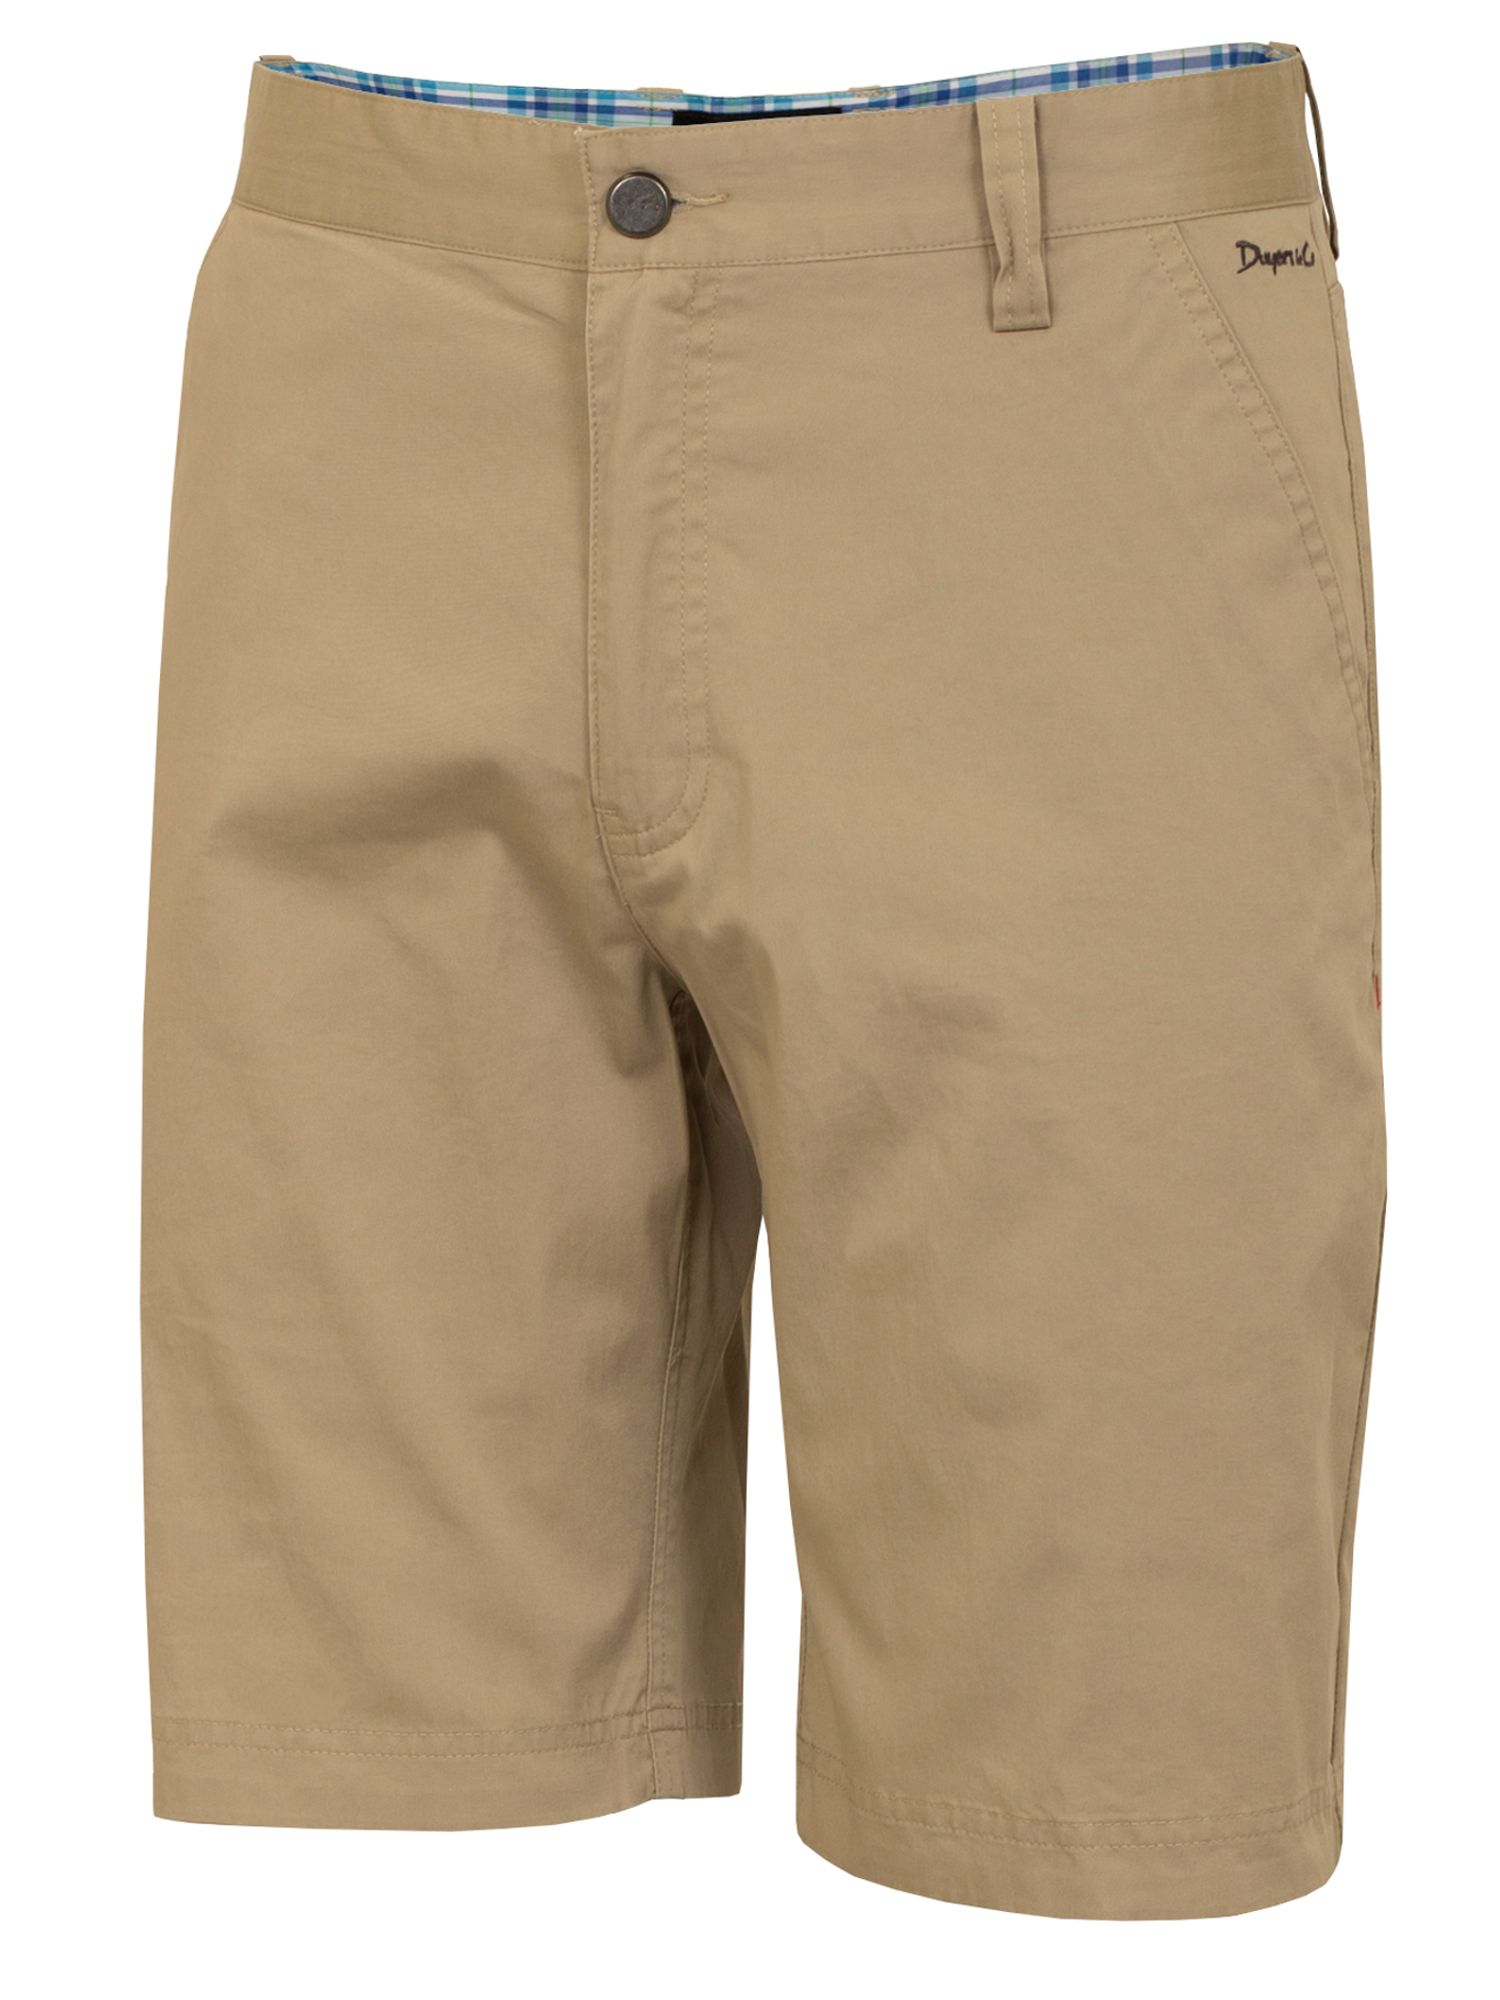 Dwyers and Co Men's Dwyers and Co Titanium Chino Shorts, Beige